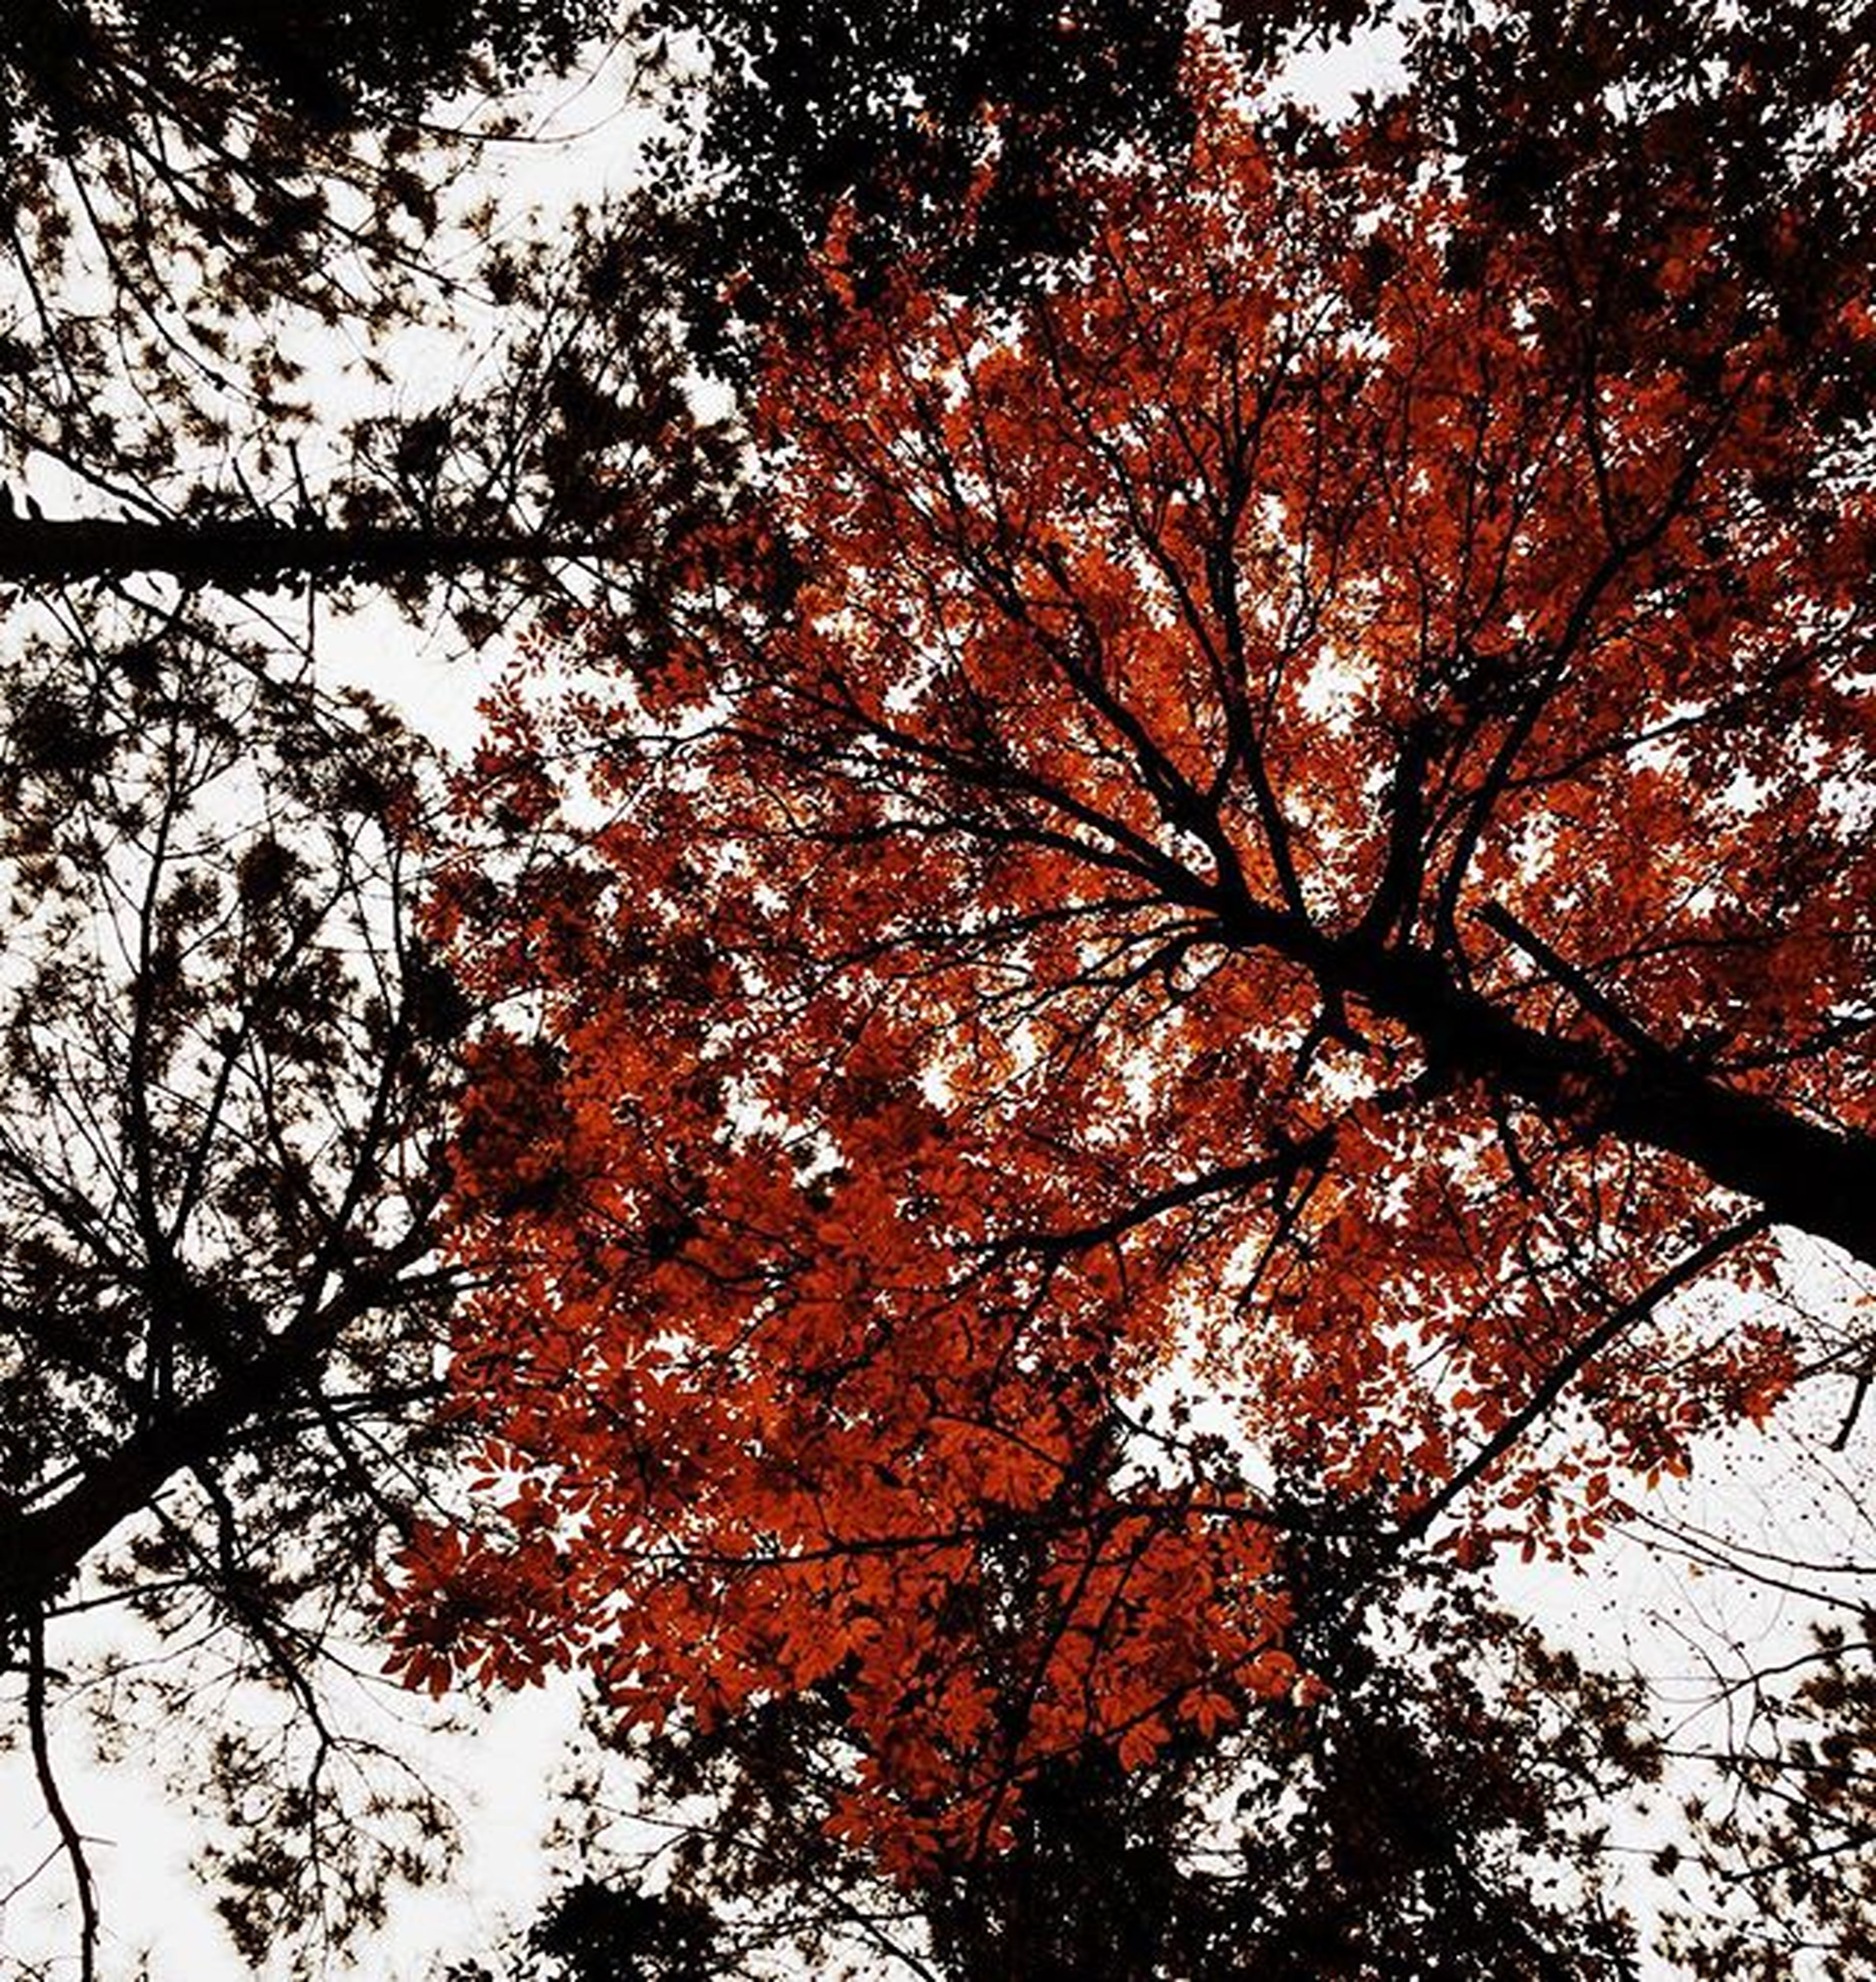 tree, autumn, branch, low angle view, change, season, nature, growth, leaf, tranquility, tree trunk, day, full frame, beauty in nature, orange color, outdoors, no people, backgrounds, sky, close-up